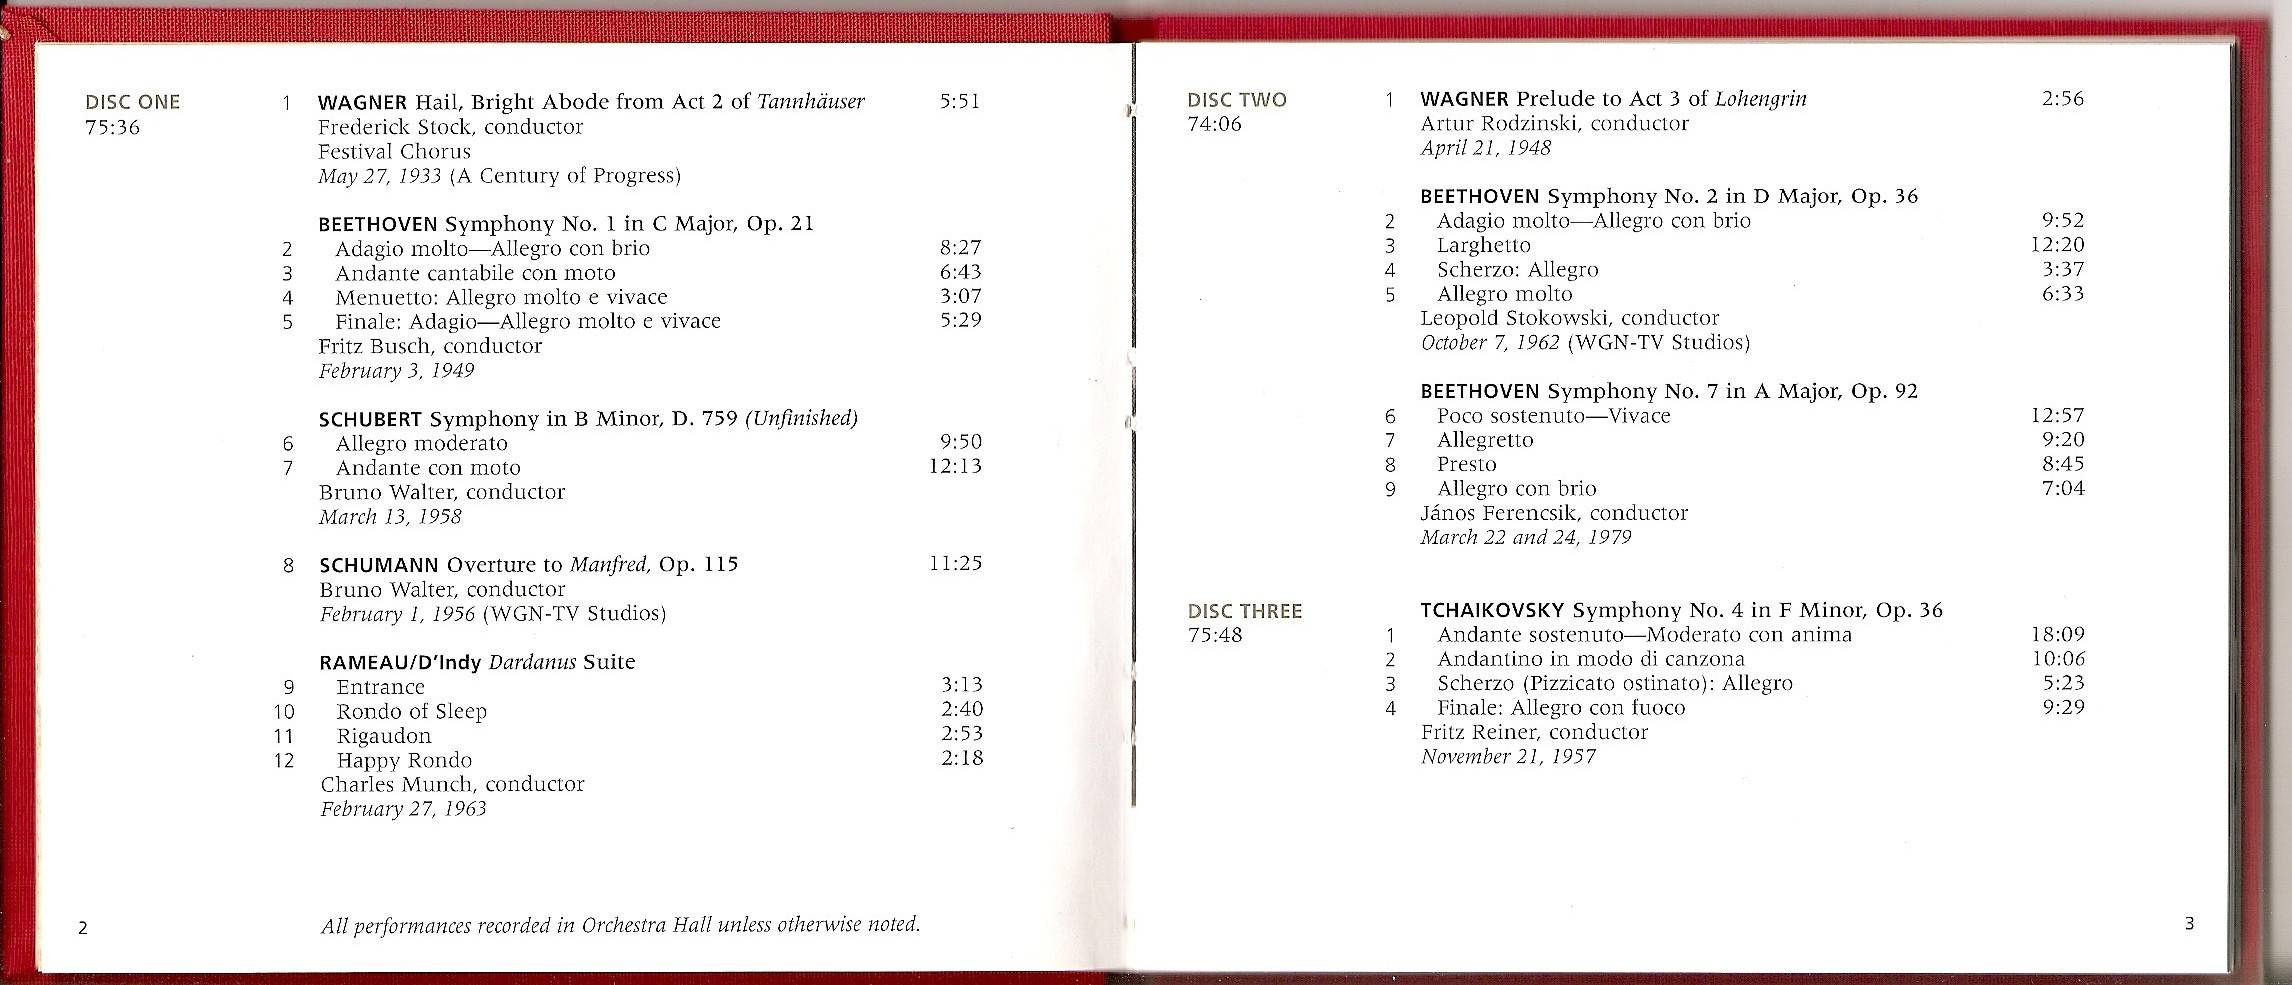 Chicago Symphony Orchestra - From The Archives: The CSO in the 20th Century: Collector's Choice, 10-CD set (2000) (page 2 of 5)